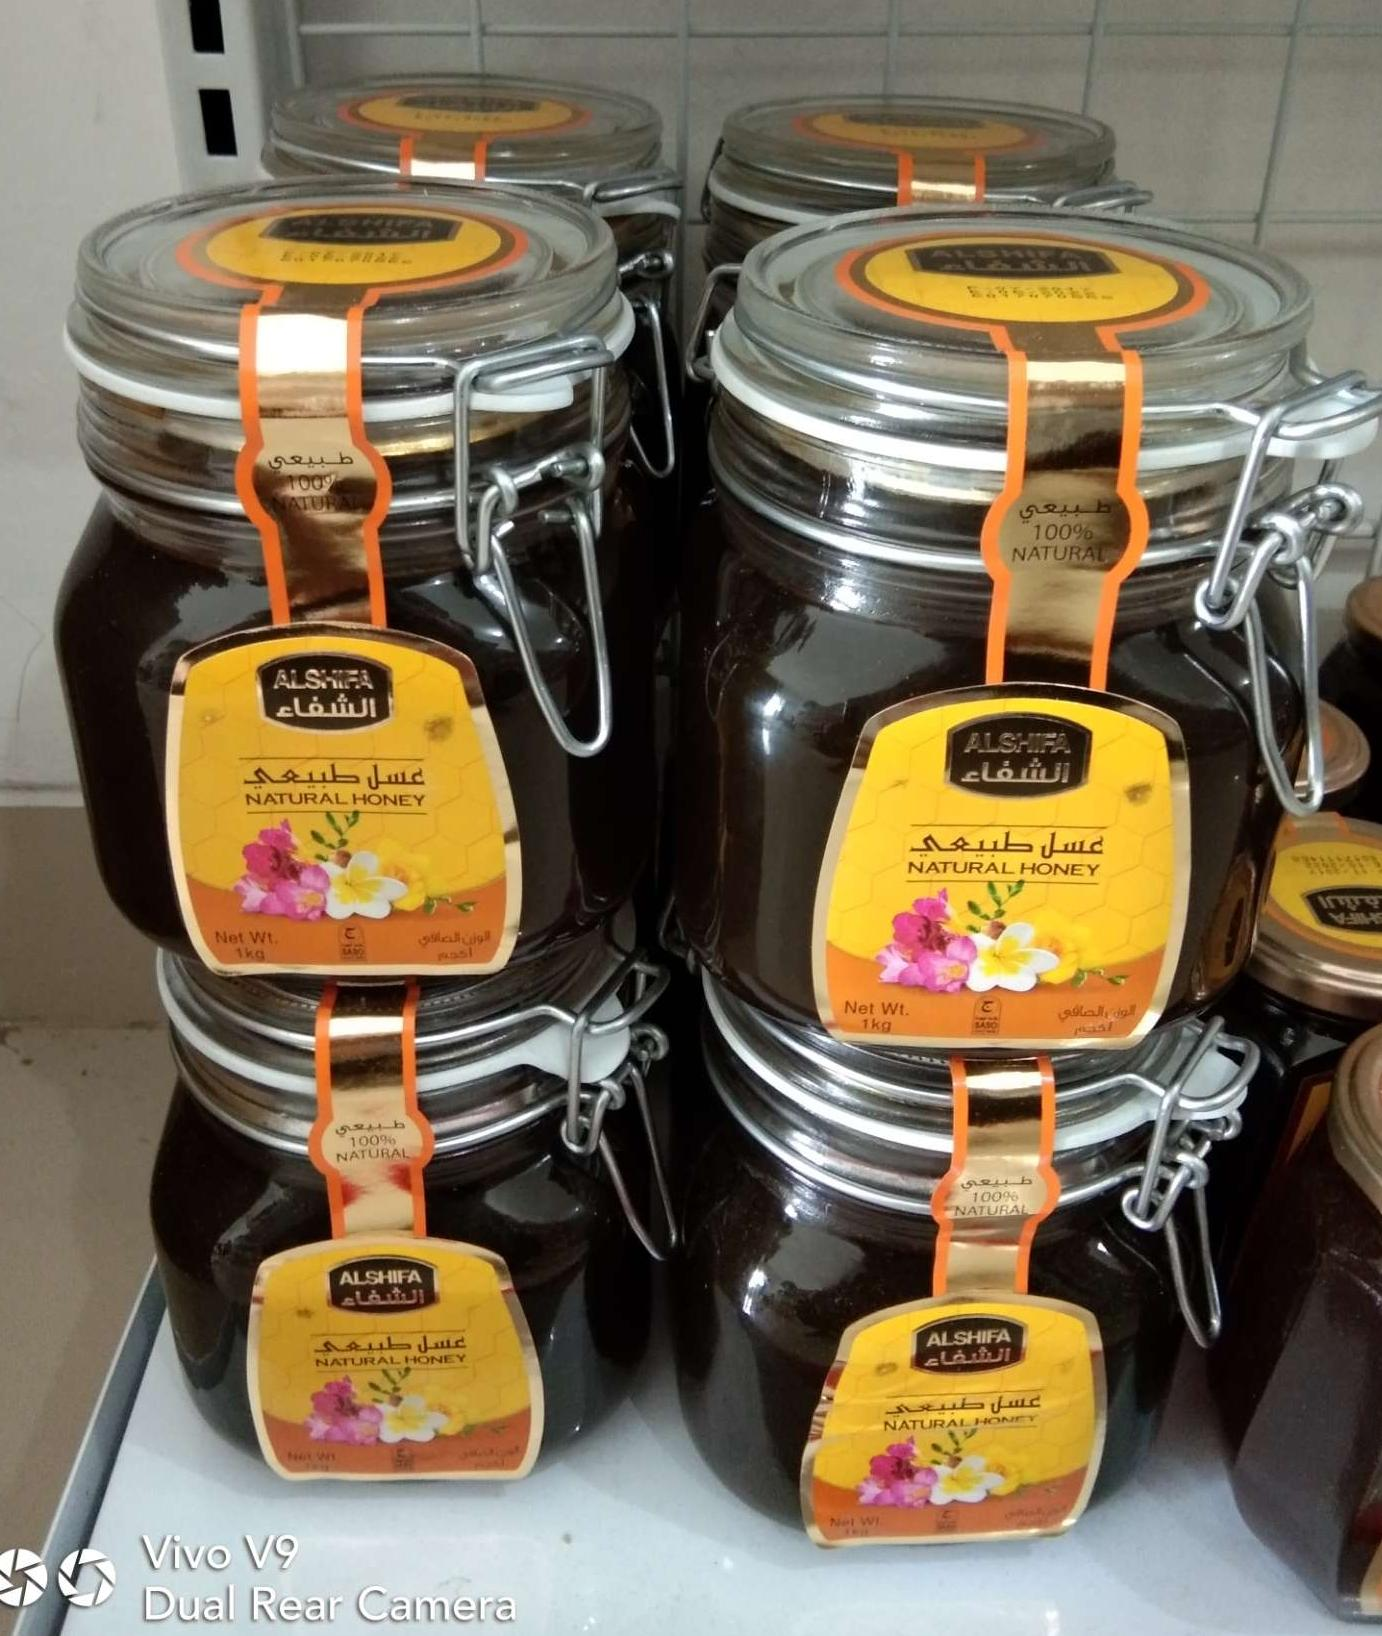 Harga Madu Al Shifa 1 Kg Segel Kawat Update 2018 Alshifa 1kg Asli Kemasan Import Arab Natural Honey